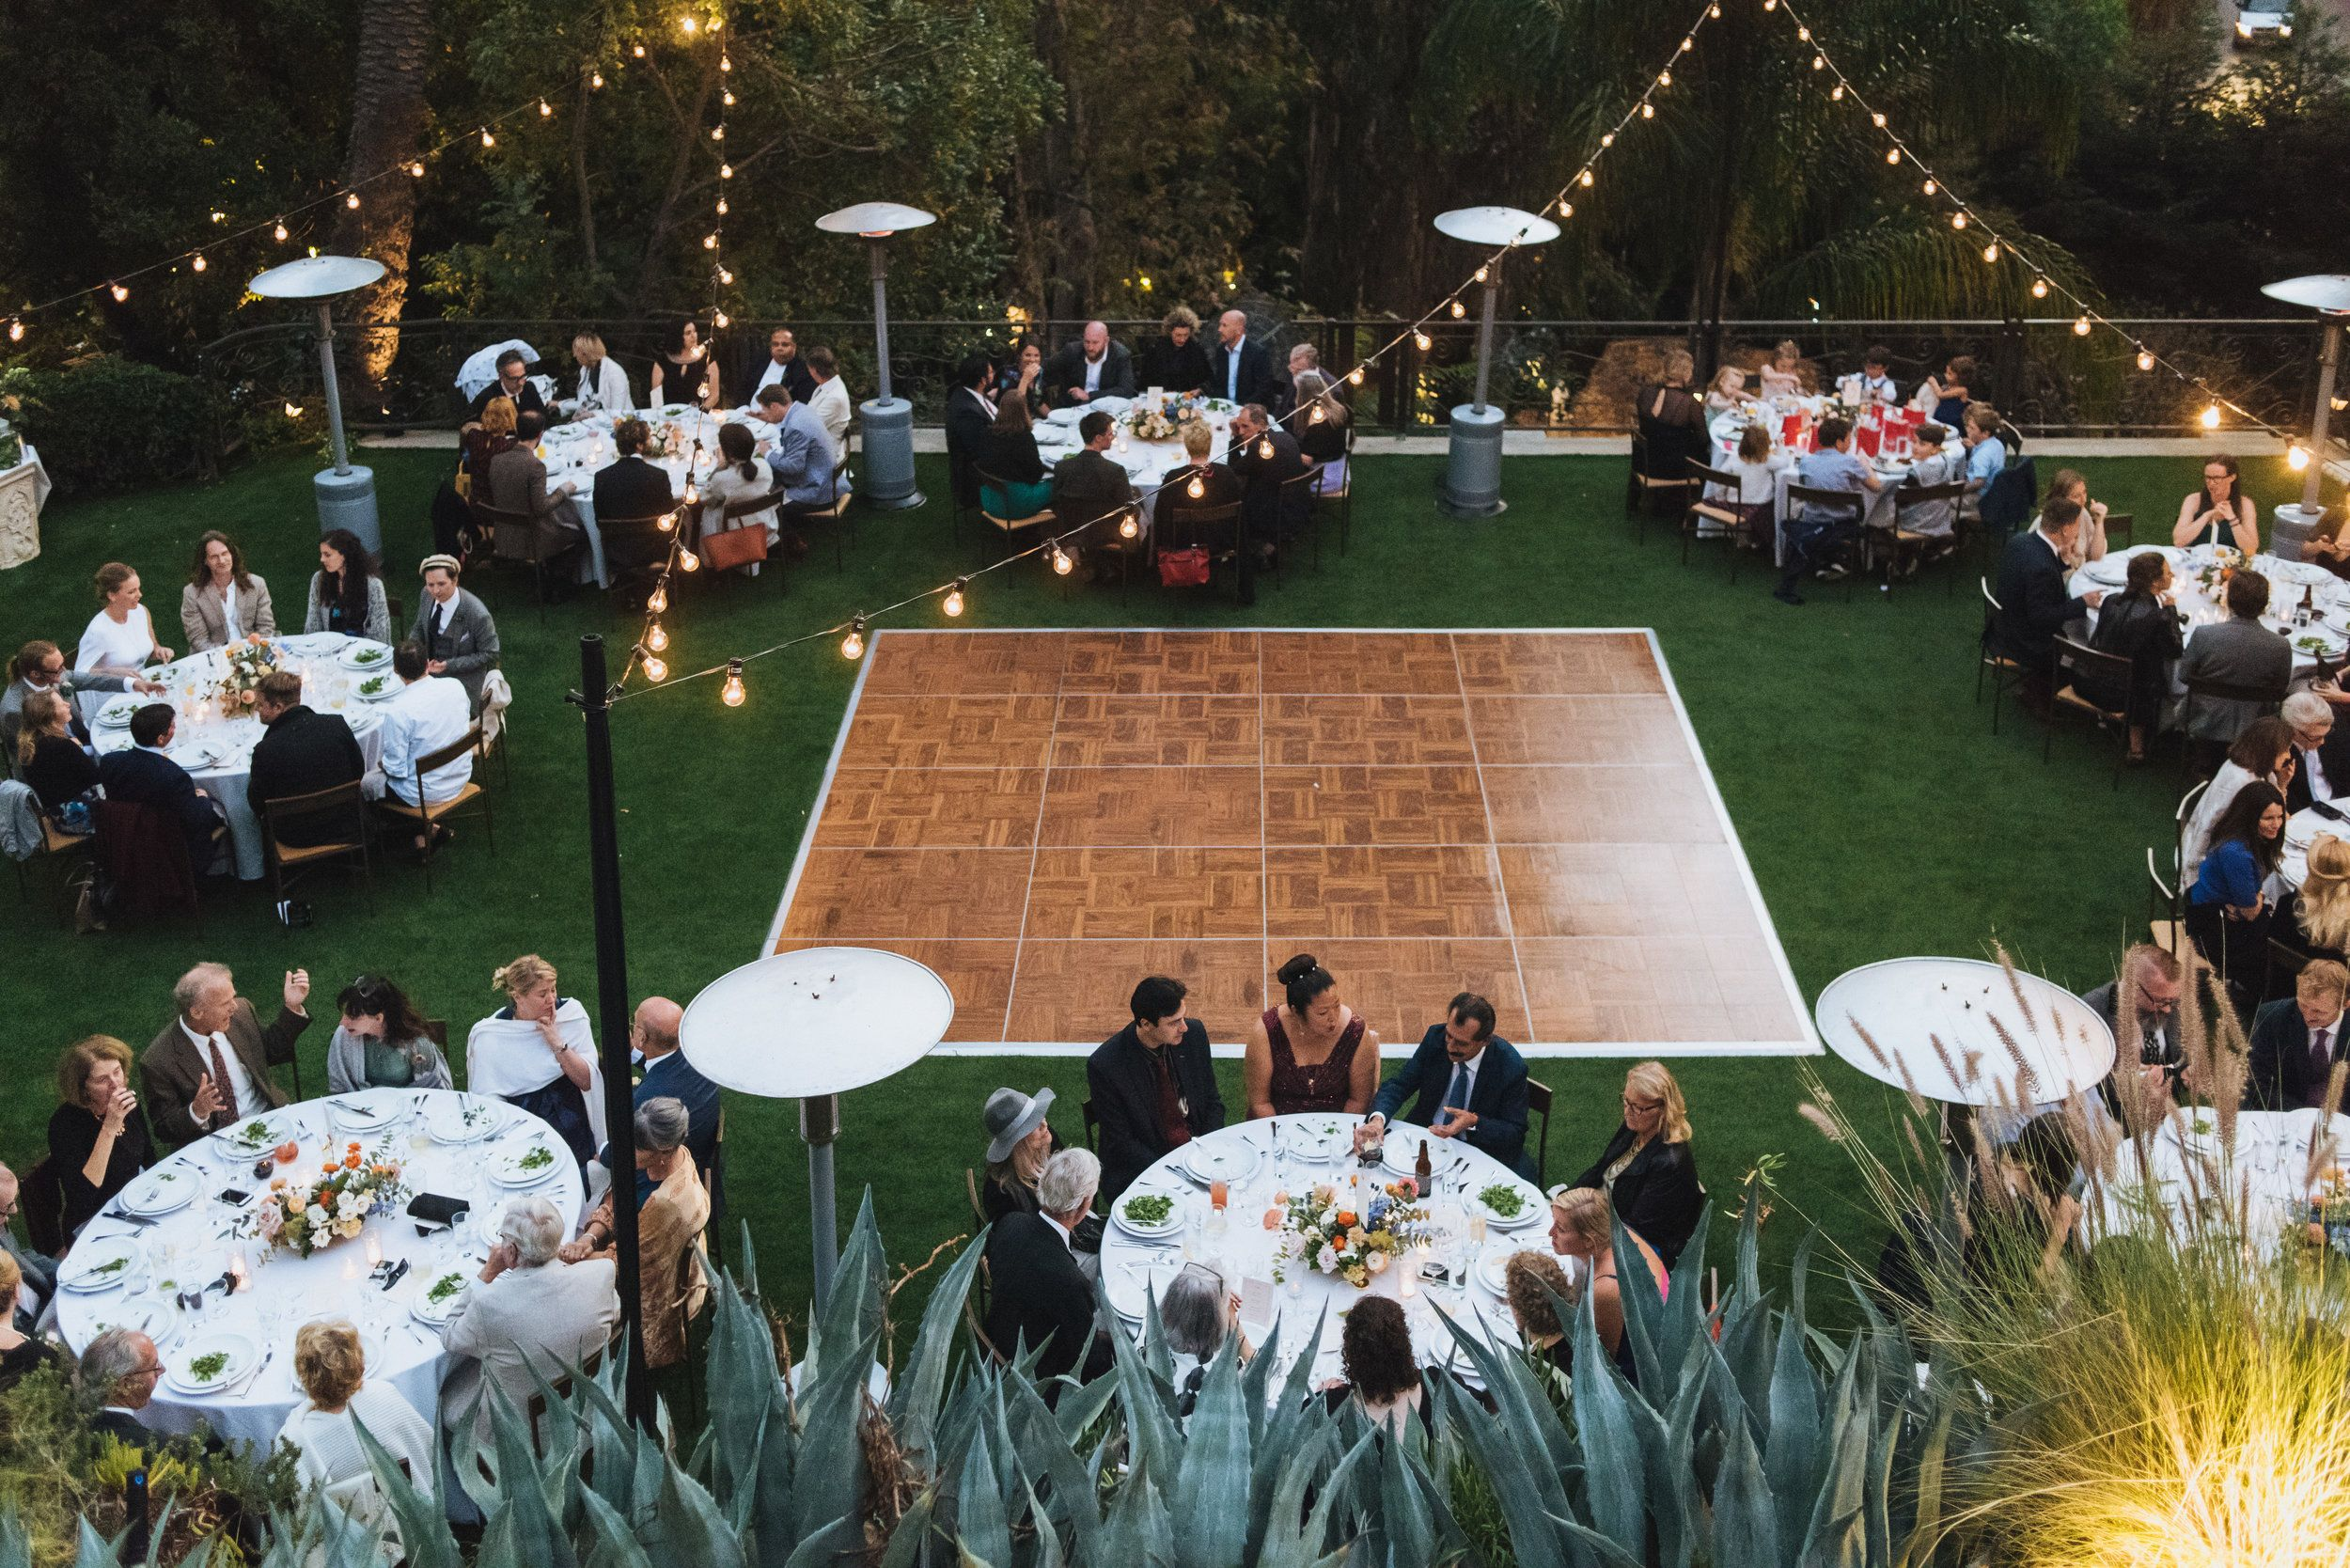 Romantic Outdoor Wedding Reception With Round Tables At The Houdini Estate Houdini Mansion Romantic Outdoor Wedding Outdoor Wedding Outdoor Wedding Reception